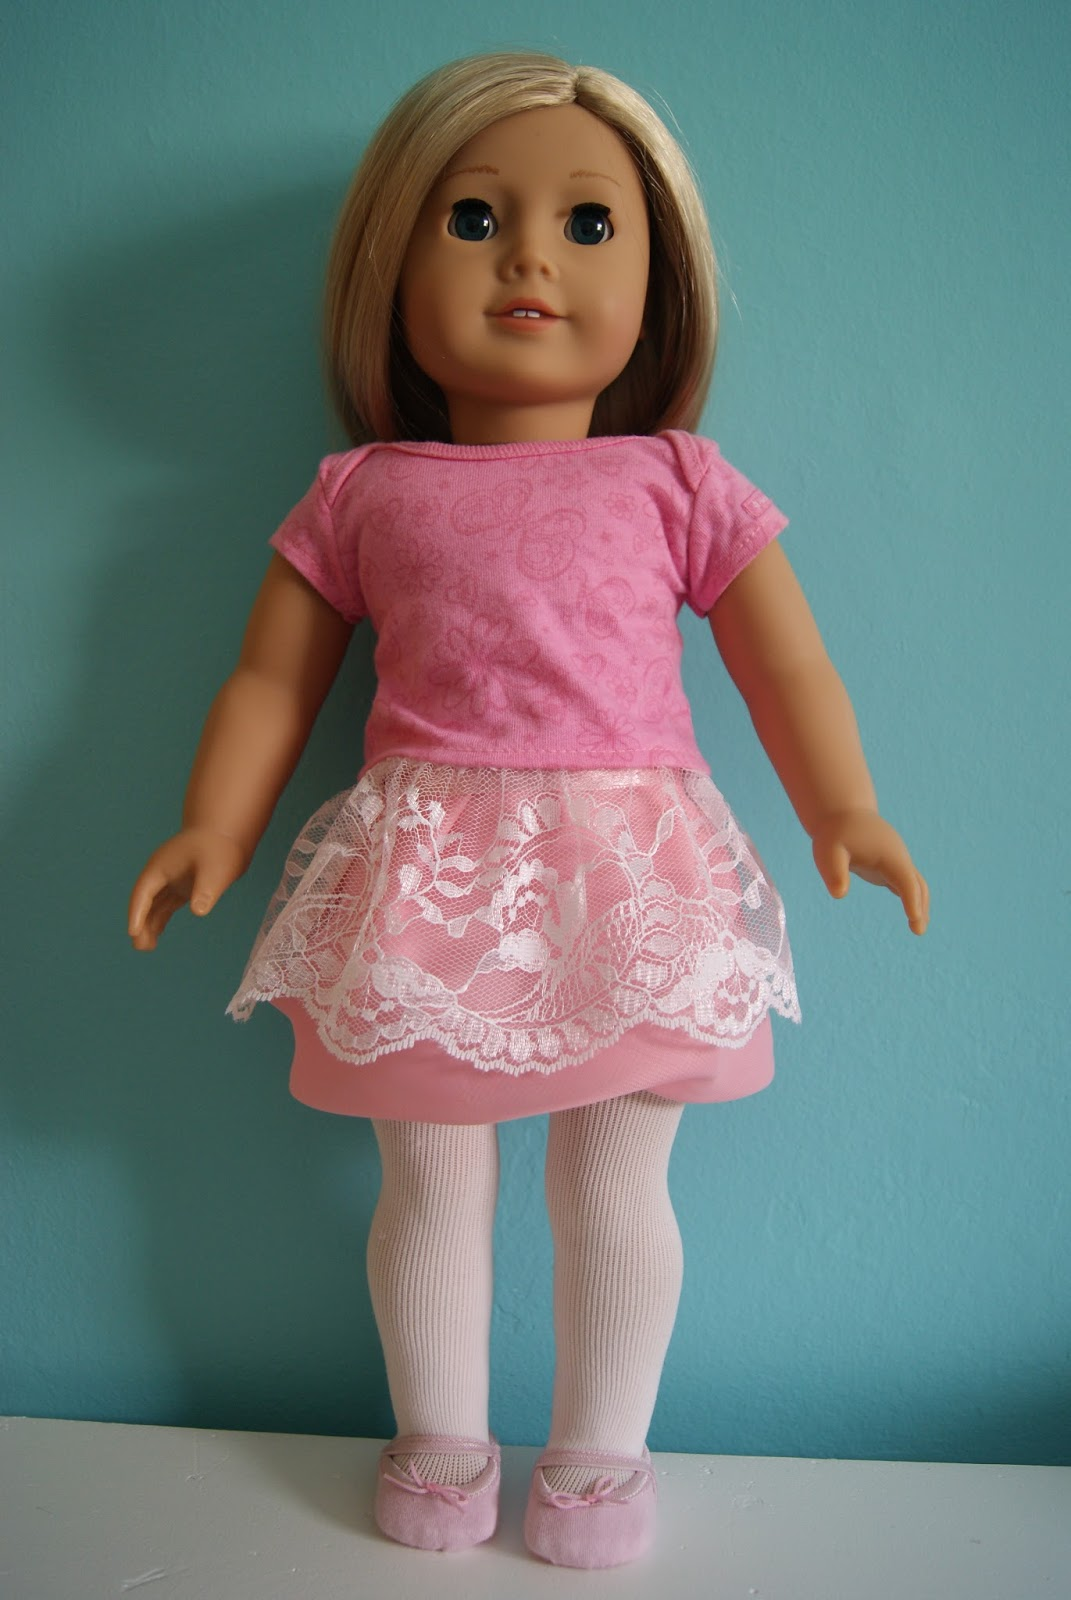 lace skirt on top of pink chiffon bubble skirt for 18-inch doll by nest full of eggs